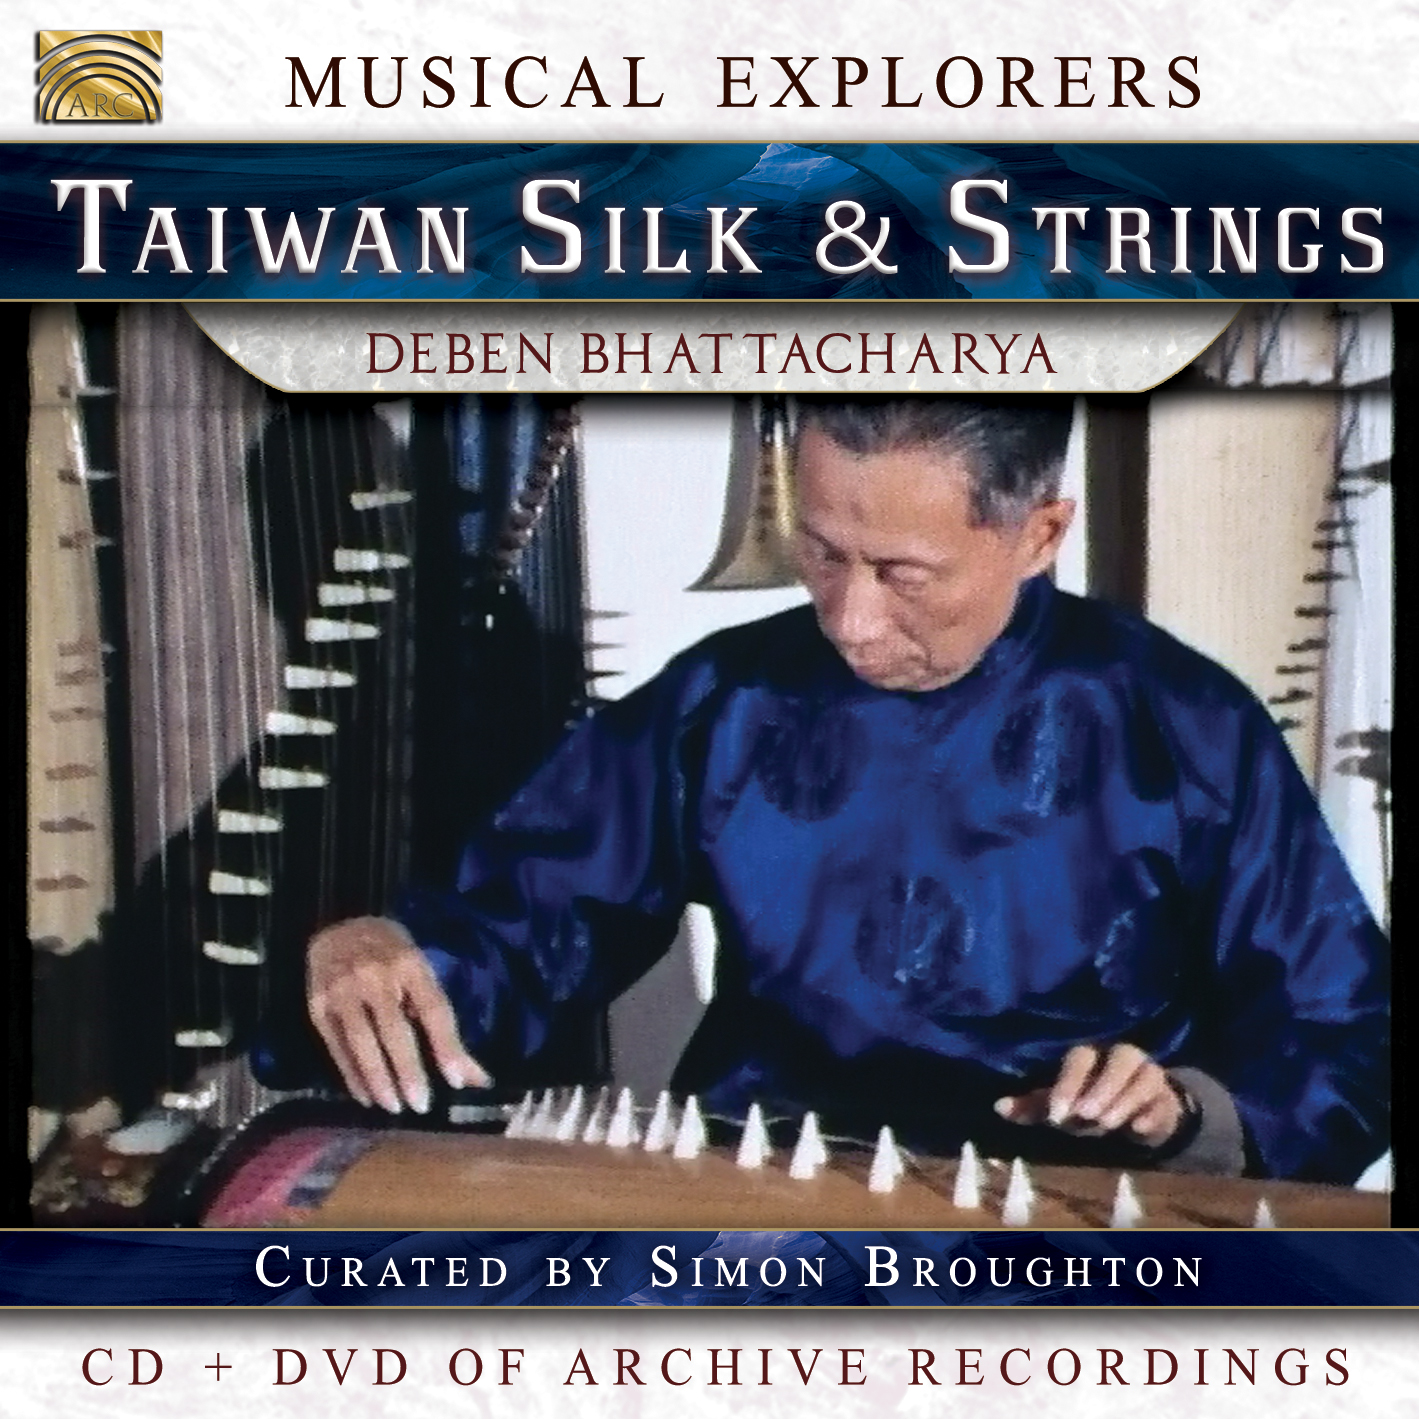 EUCD2773 Musical Explorers - Taiwan Silk & Strings